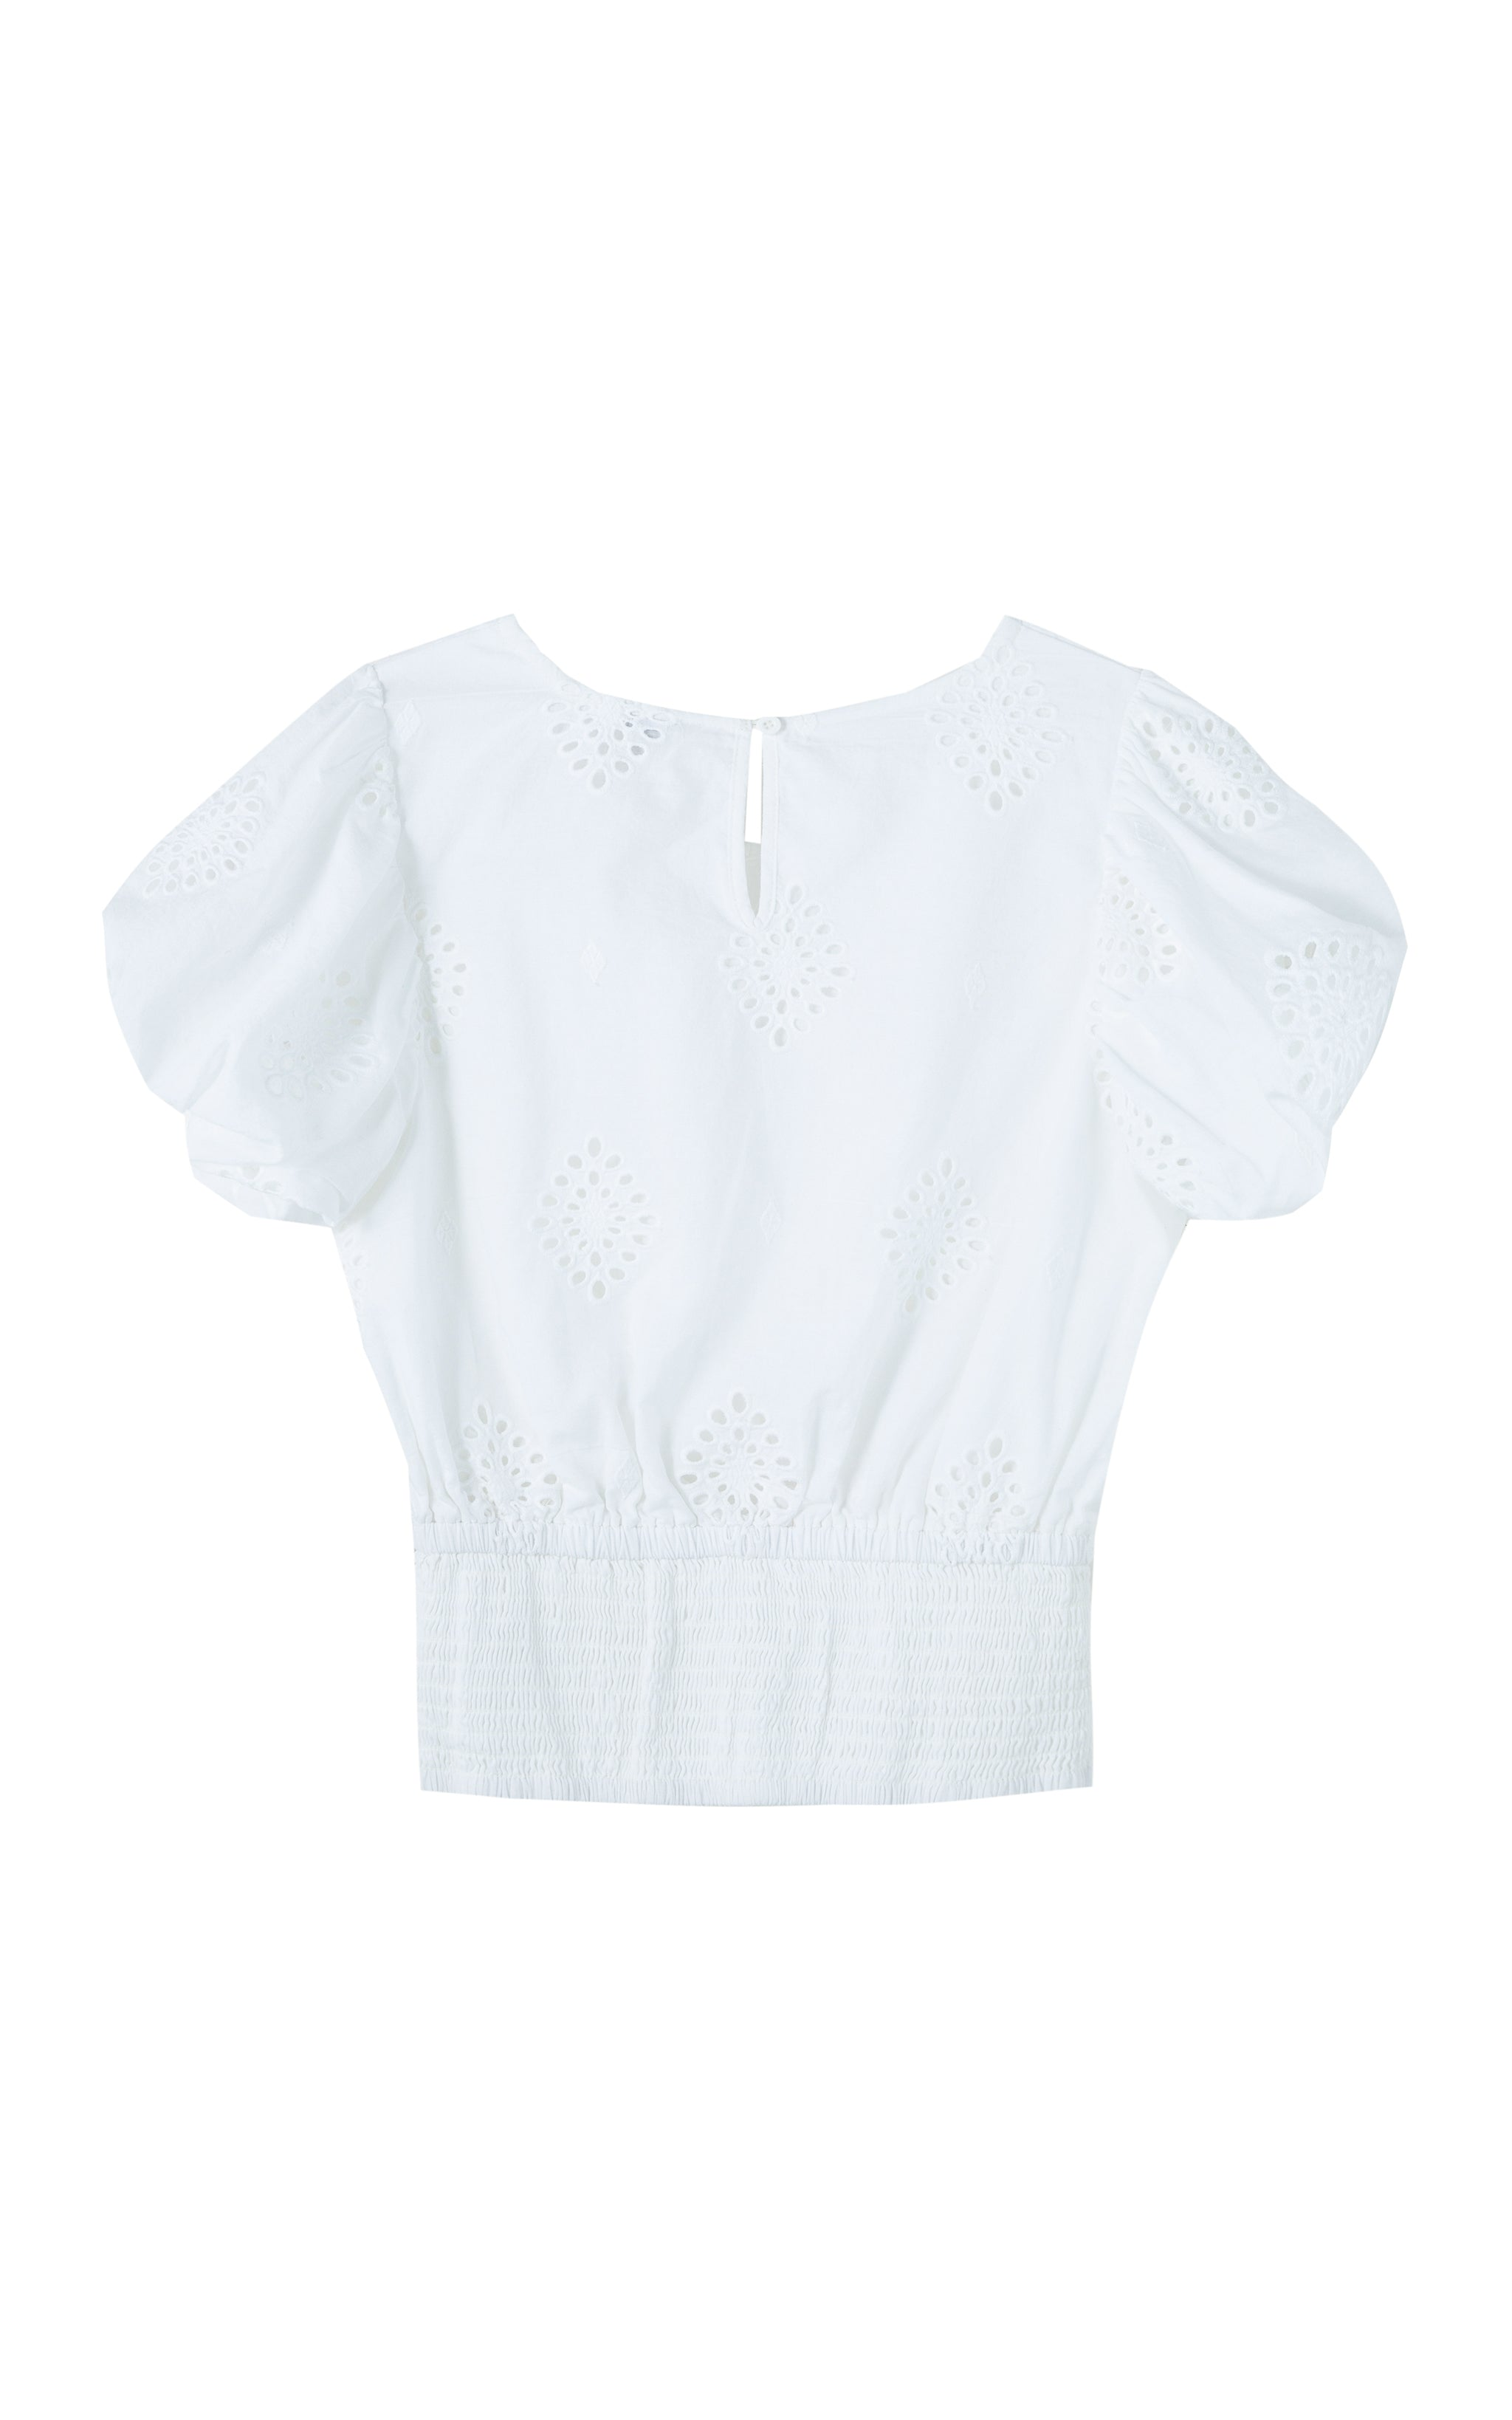 Puff Sleeve Allover Eyelet Top | 7-16